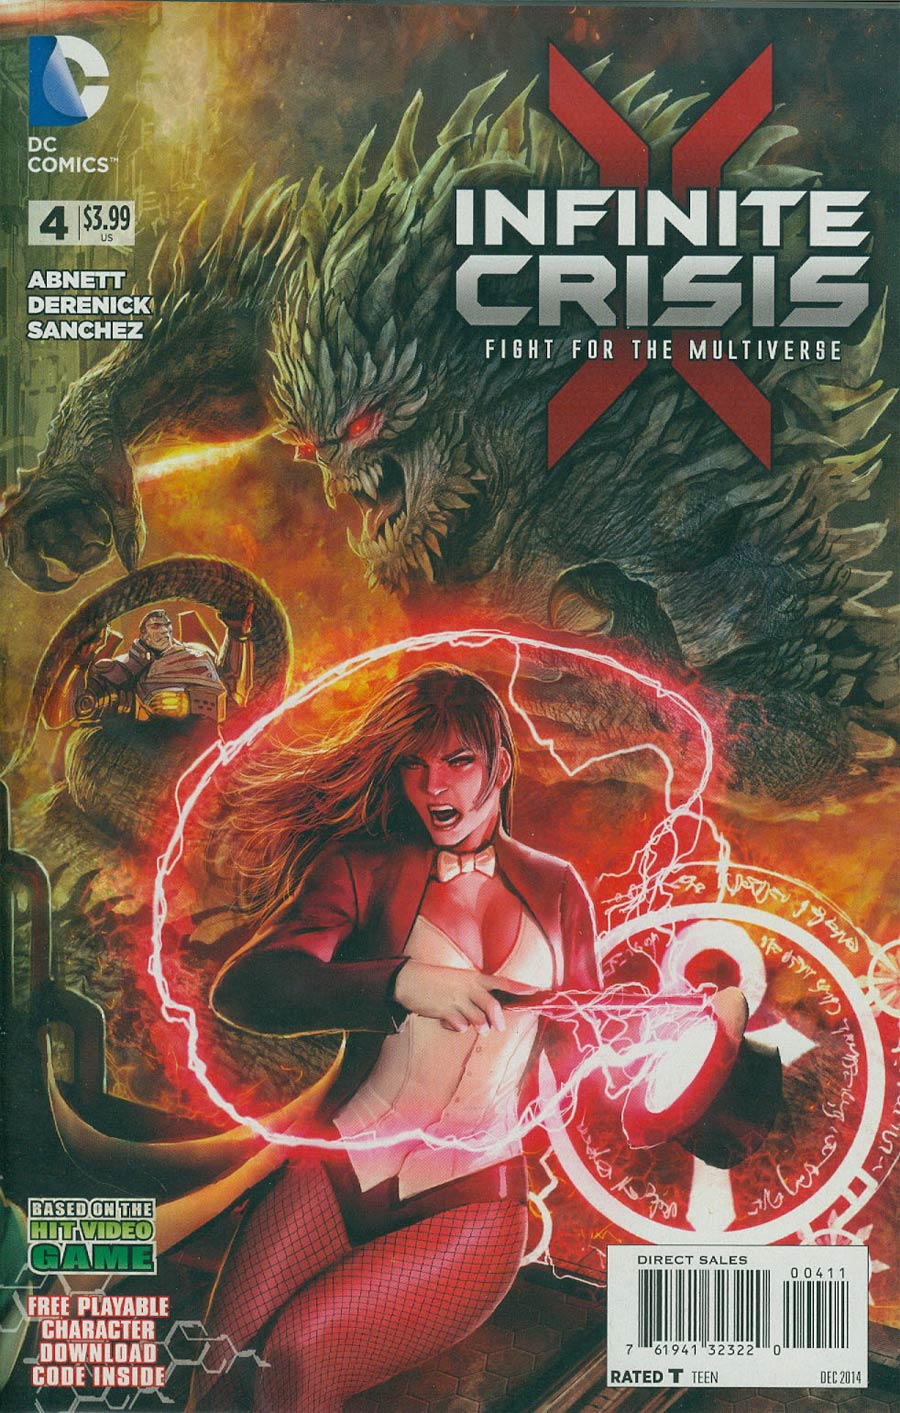 Infinite Crisis Fight For The Multiverse #4 Cover A With Polybag